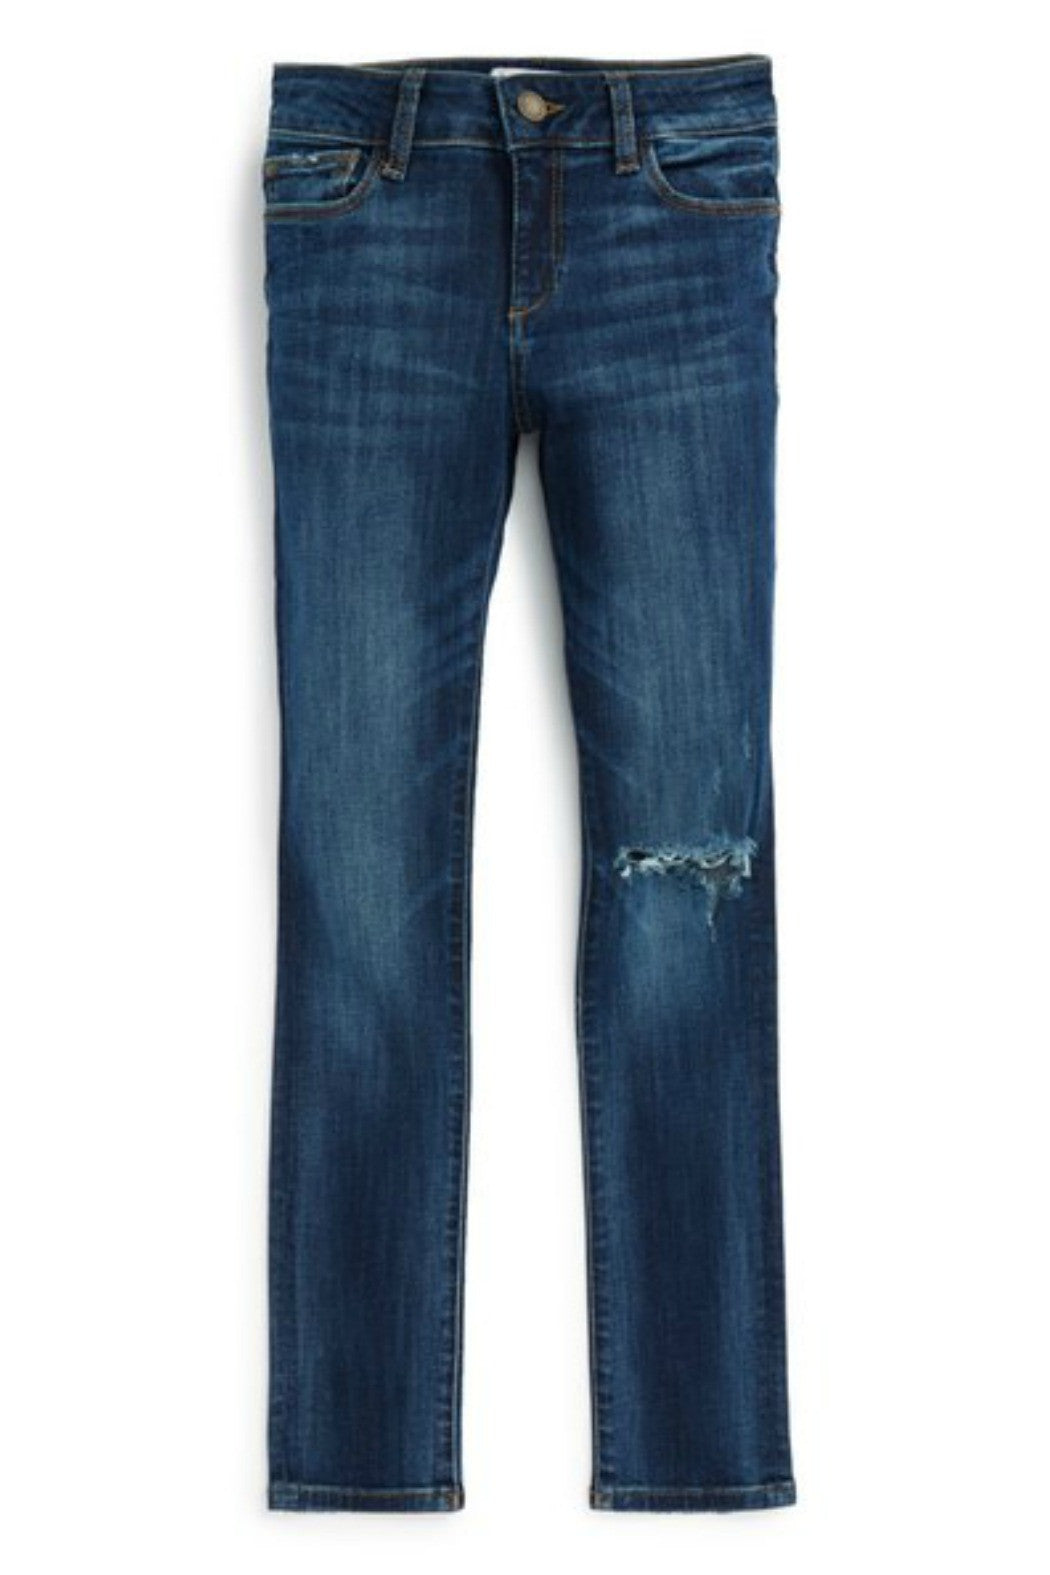 Chloe Skinny in Seymour - R+D Hipster Emporium | Womens & Mens Clothing - 1